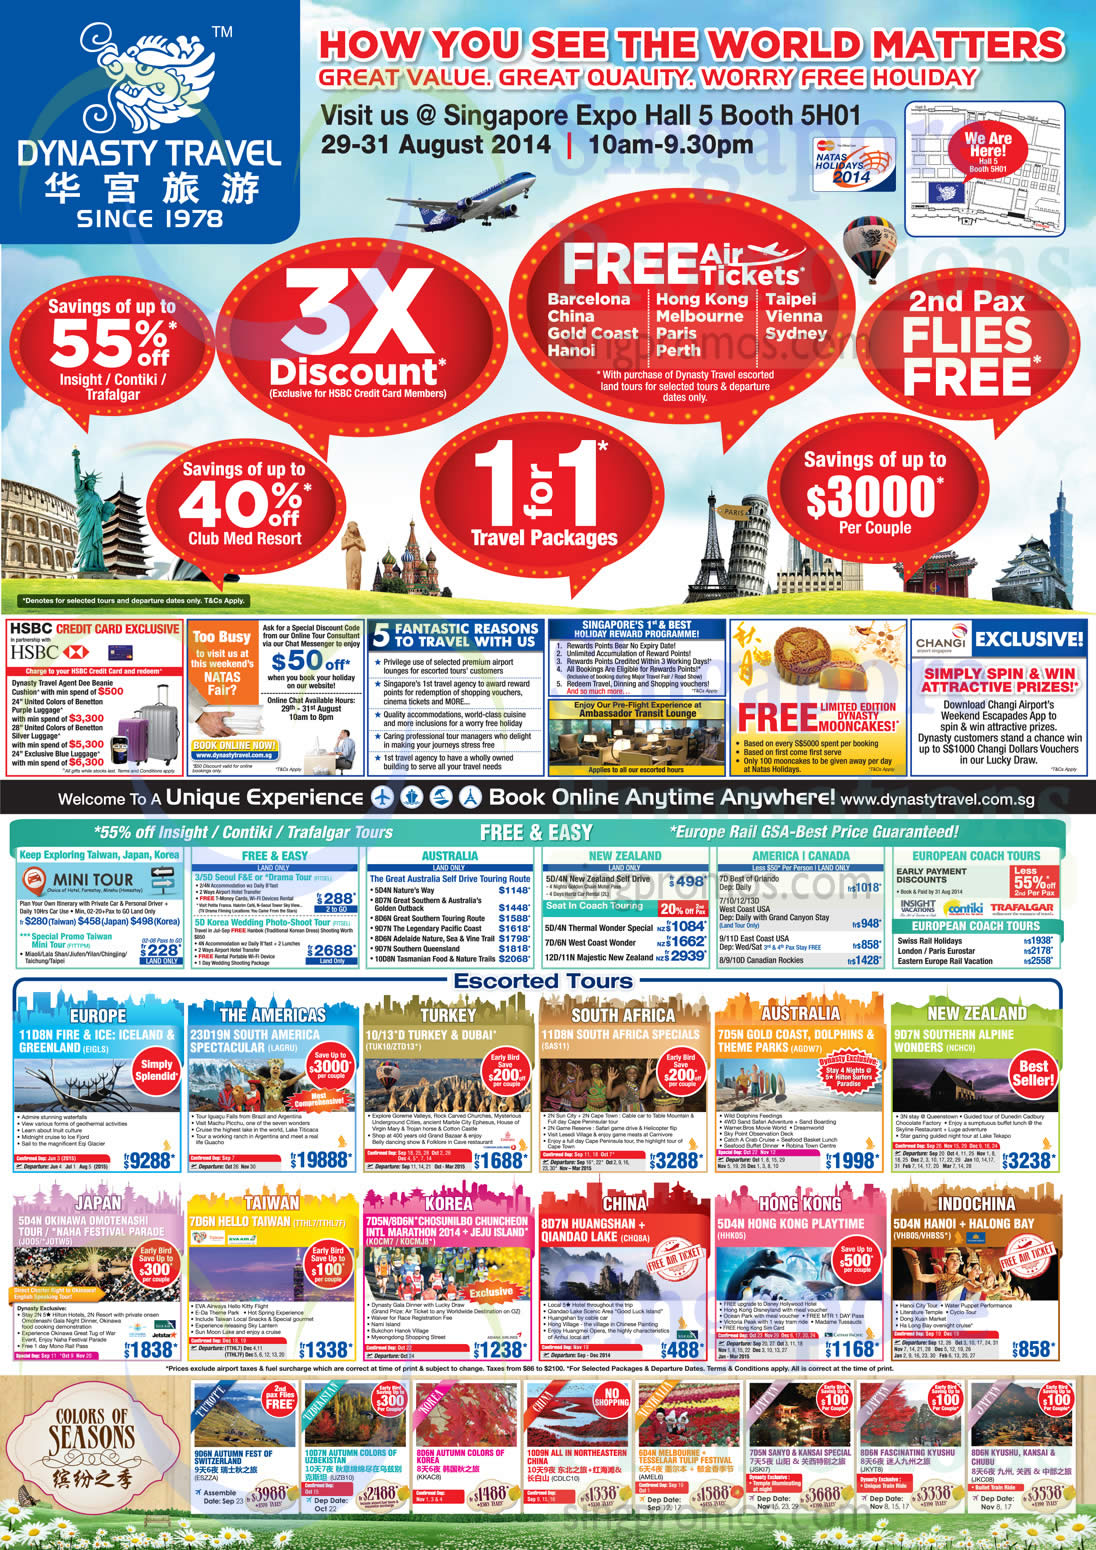 27 Aug Dynasty Travel 3X Discount, 1 For 1 Travel Packages, 2nd Pax Flies Free, Up to 55 Percent Off, Free Air Tickets